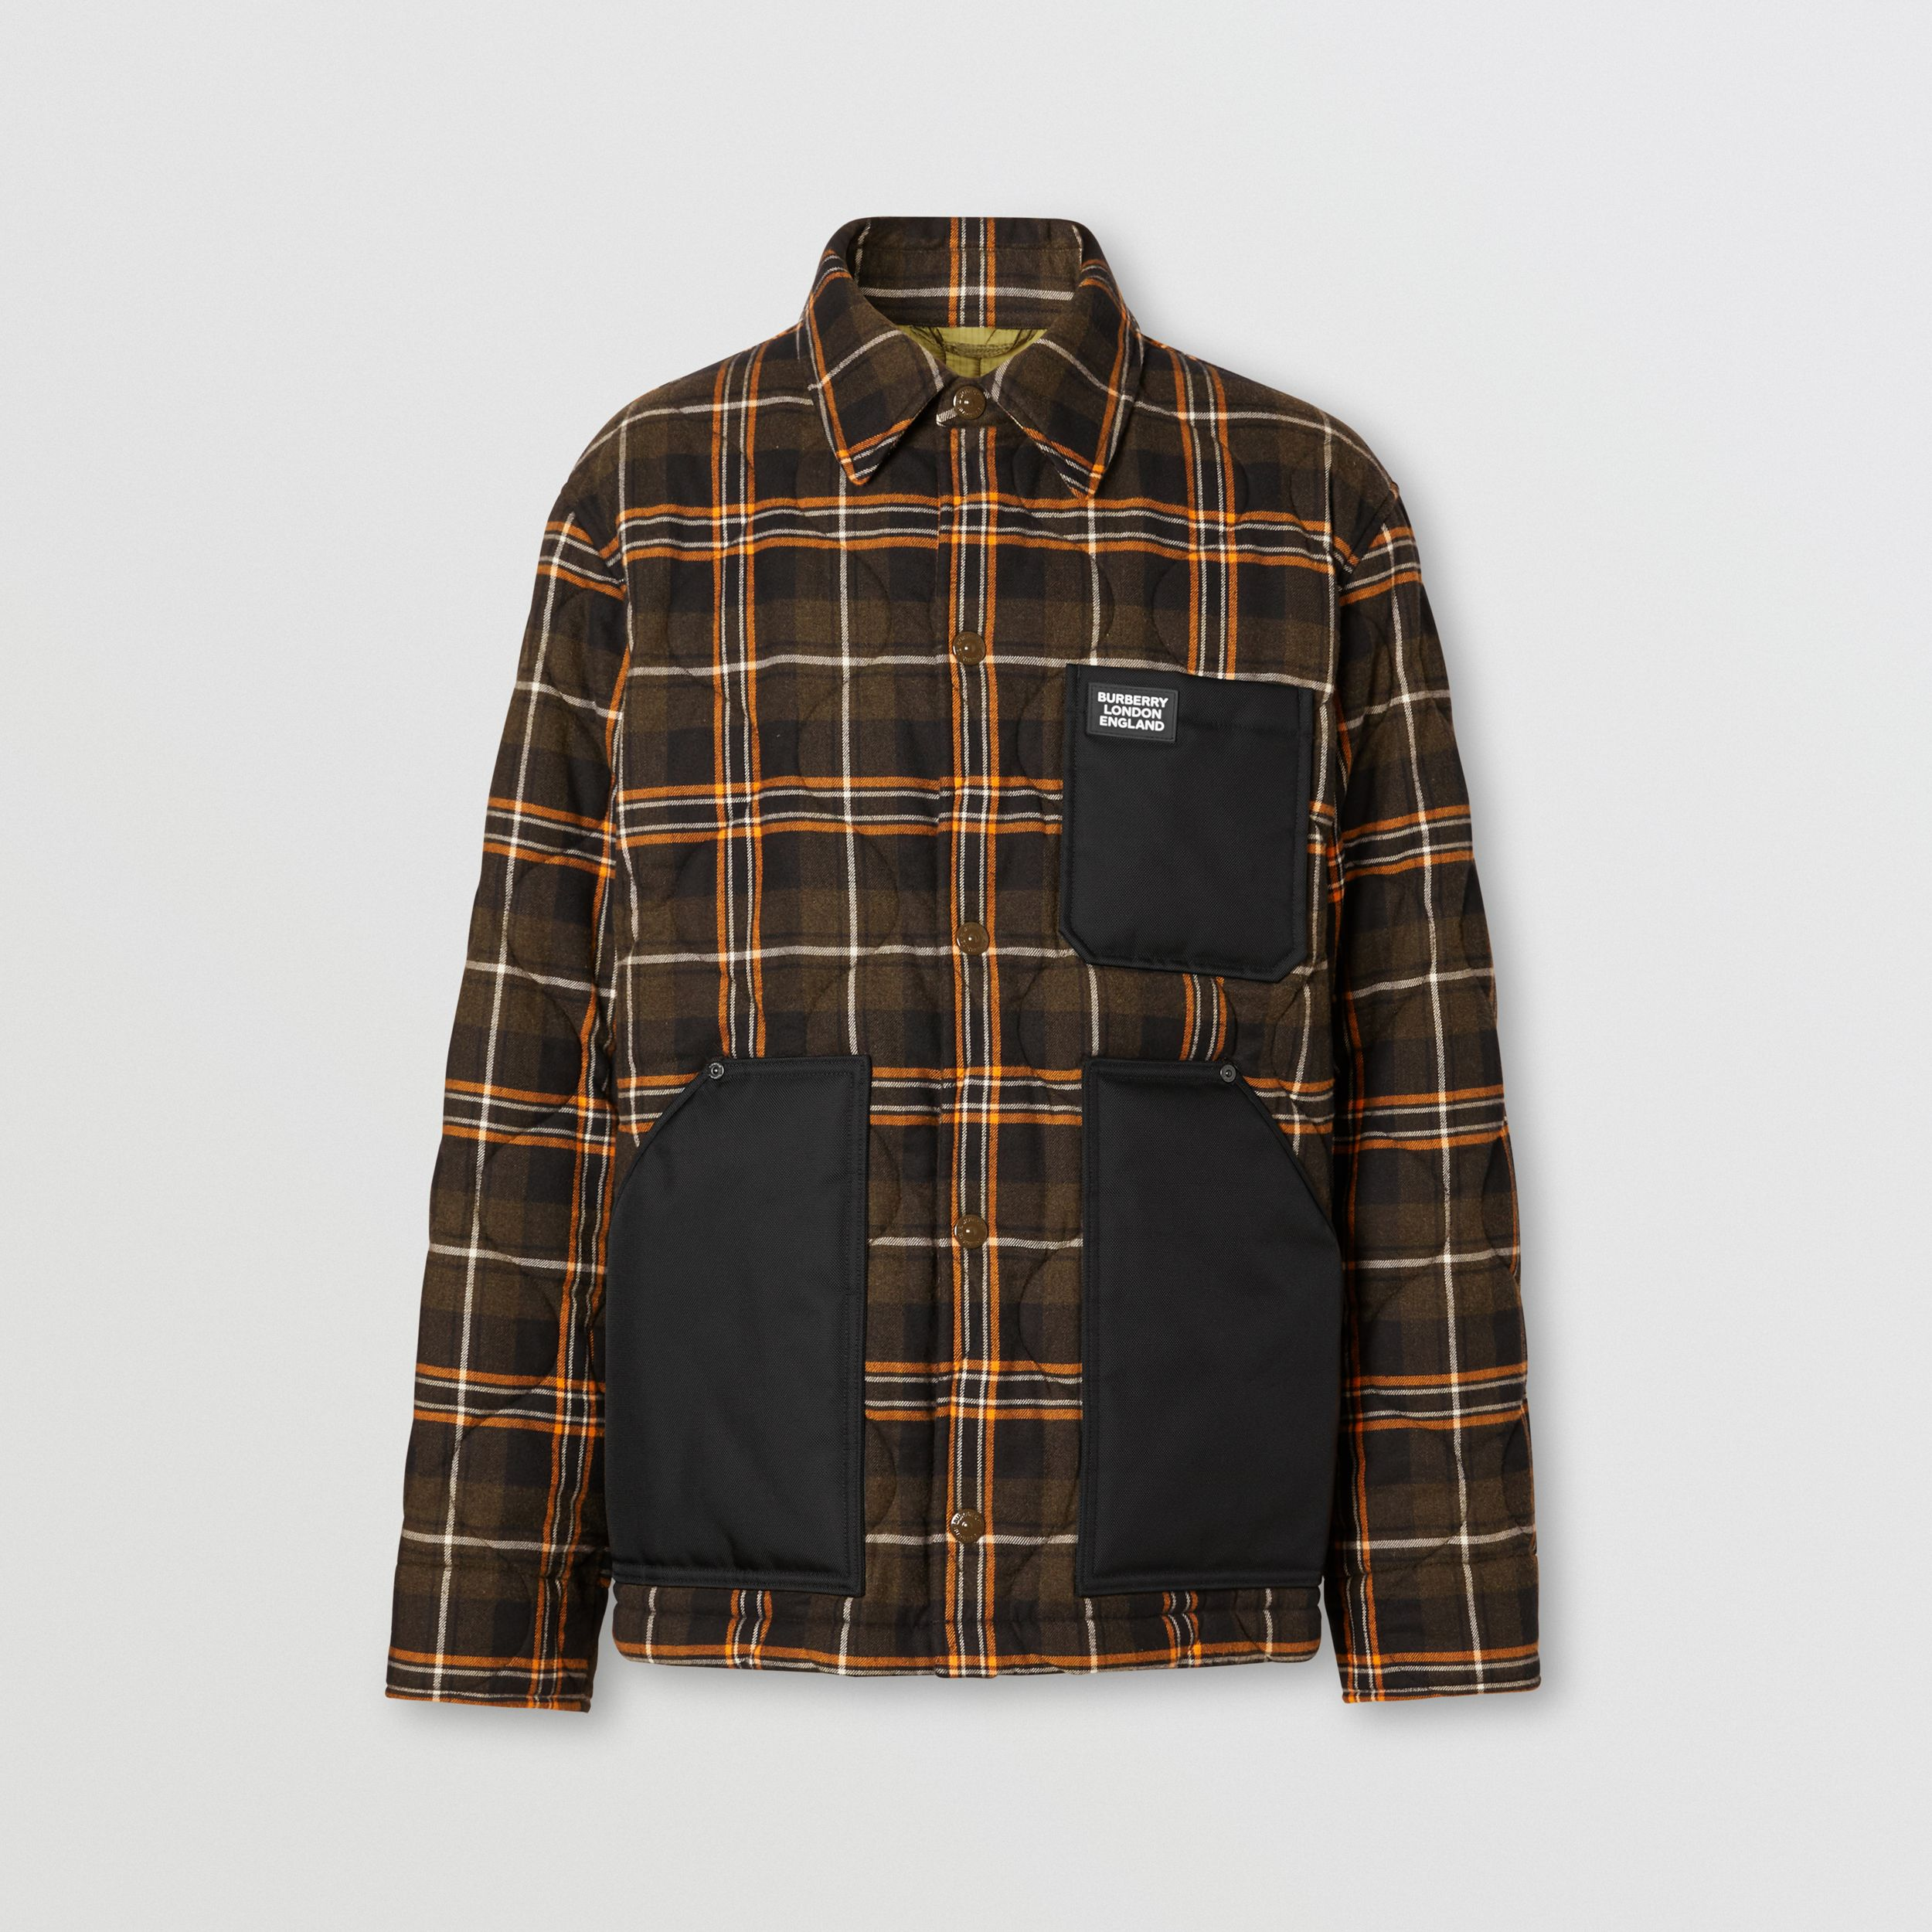 Contrast Pocket Check Cotton Flannel Overshirt in Olive - Men | Burberry Hong Kong S.A.R. - 4